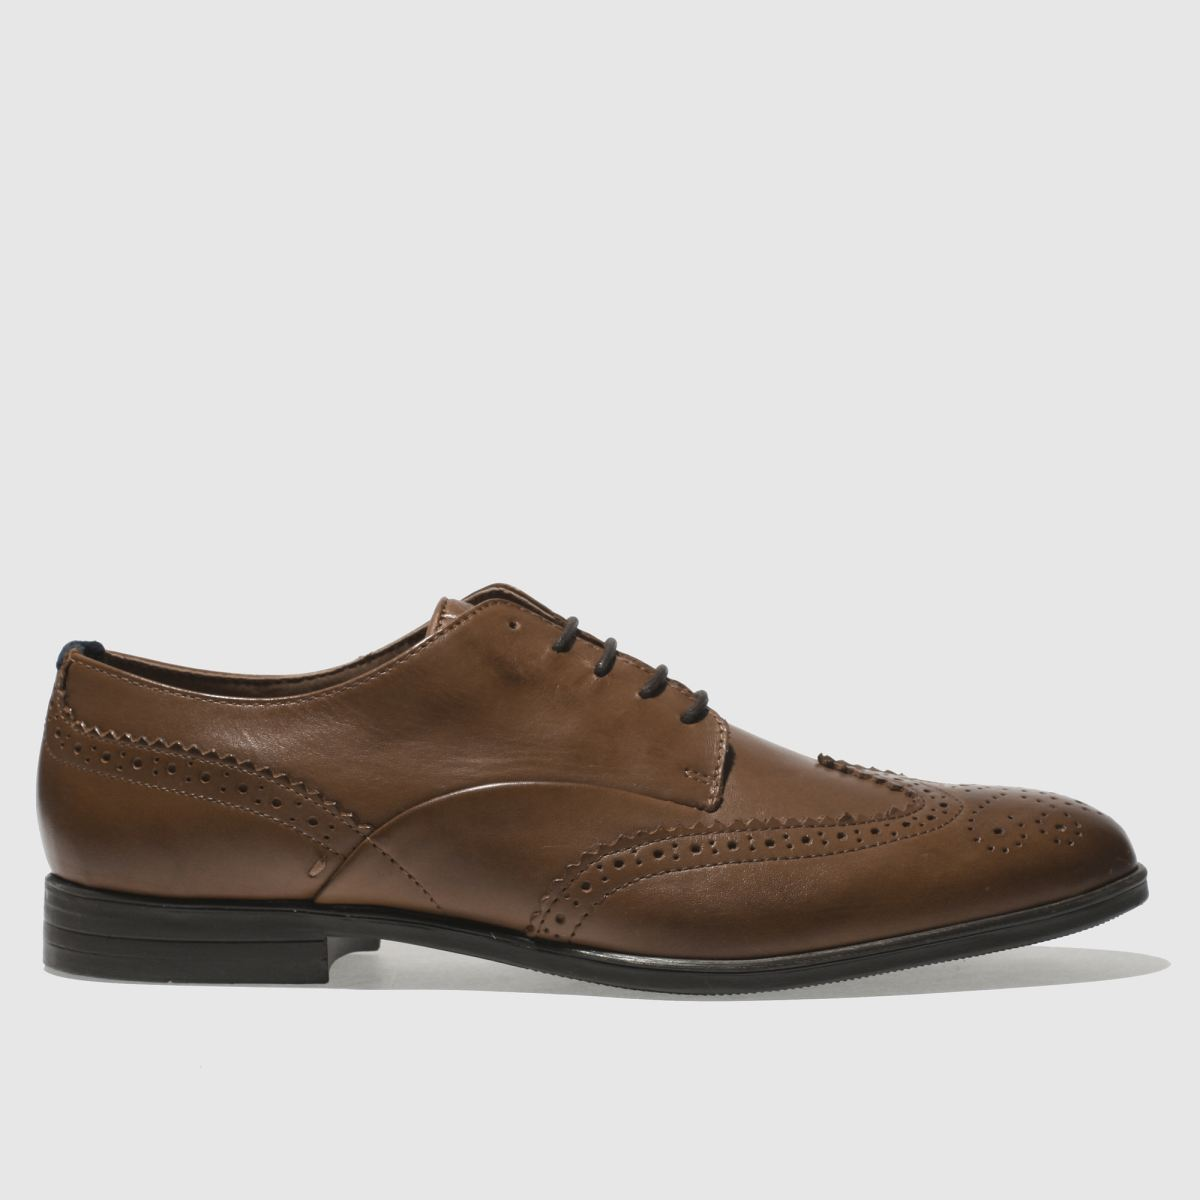 H By Hudson Tan Aylesbury Shoes